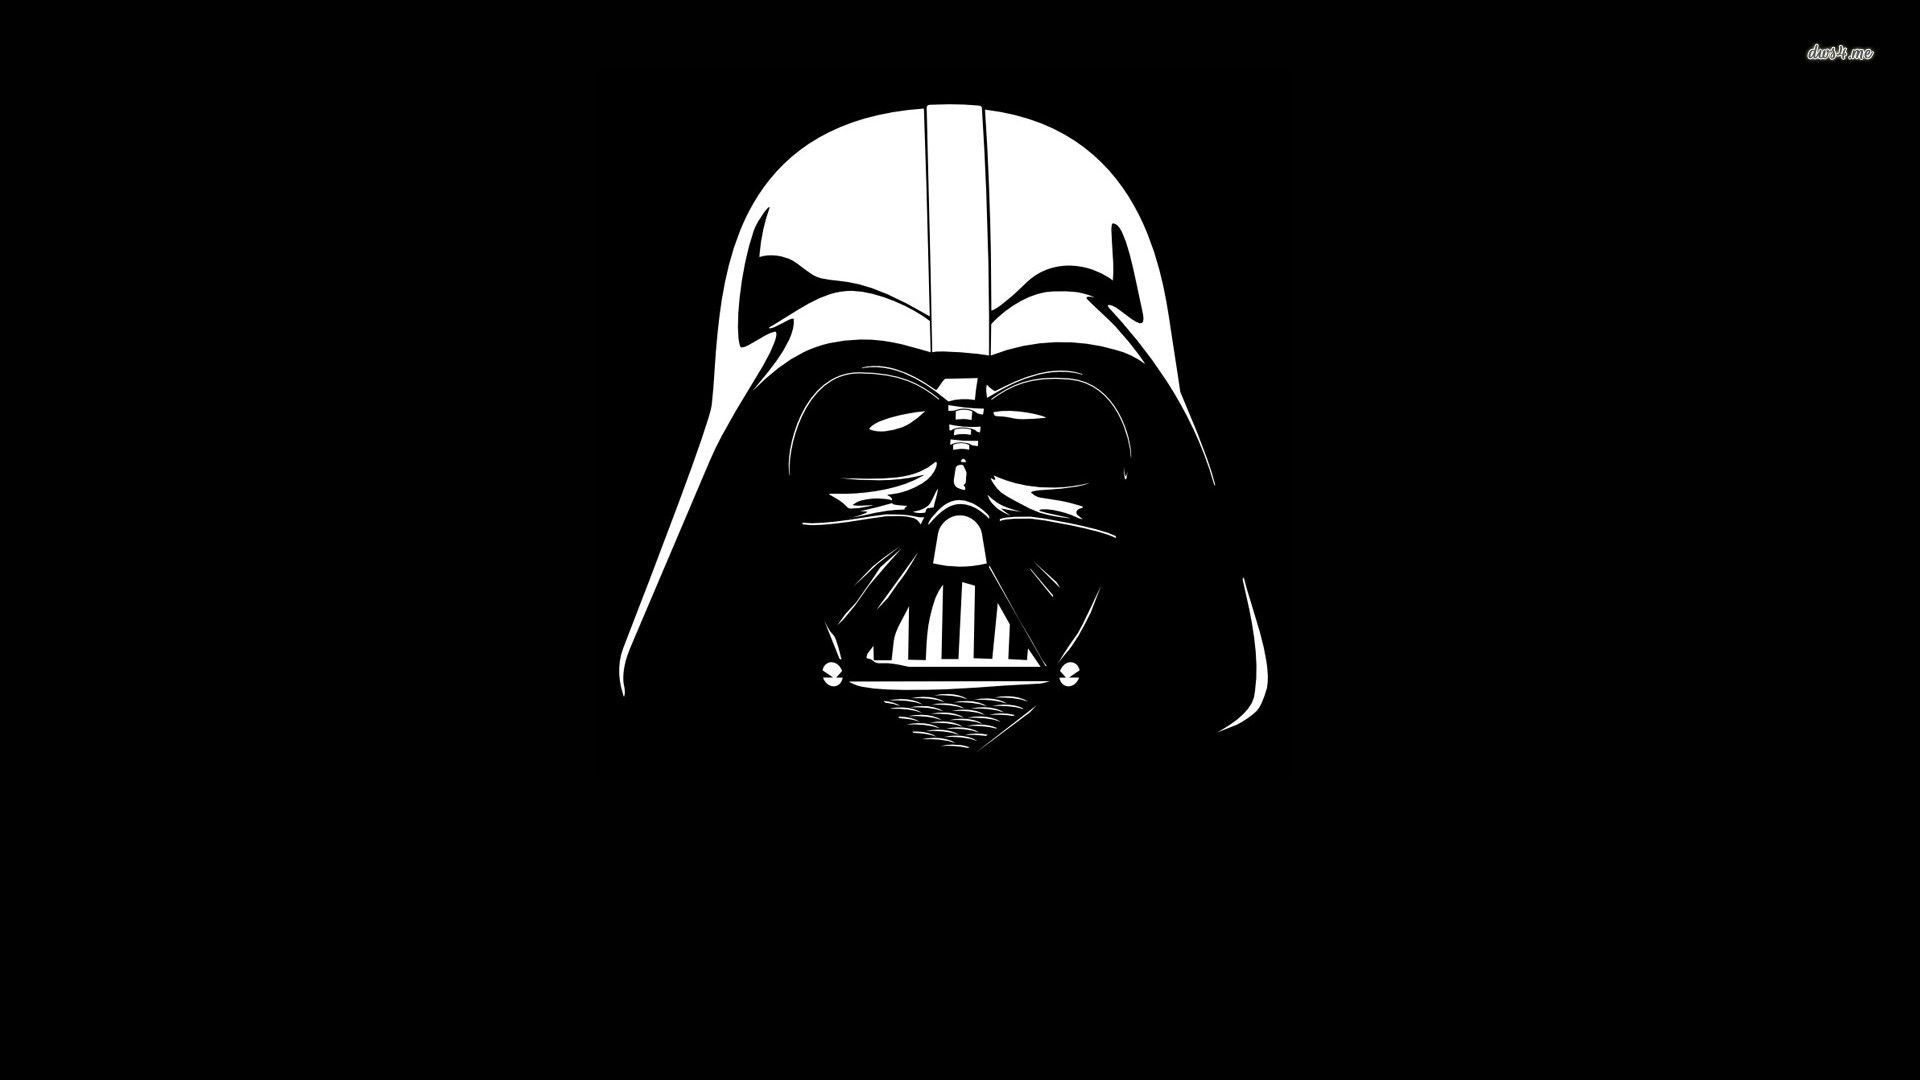 Black And White Wallpaper Star Wars